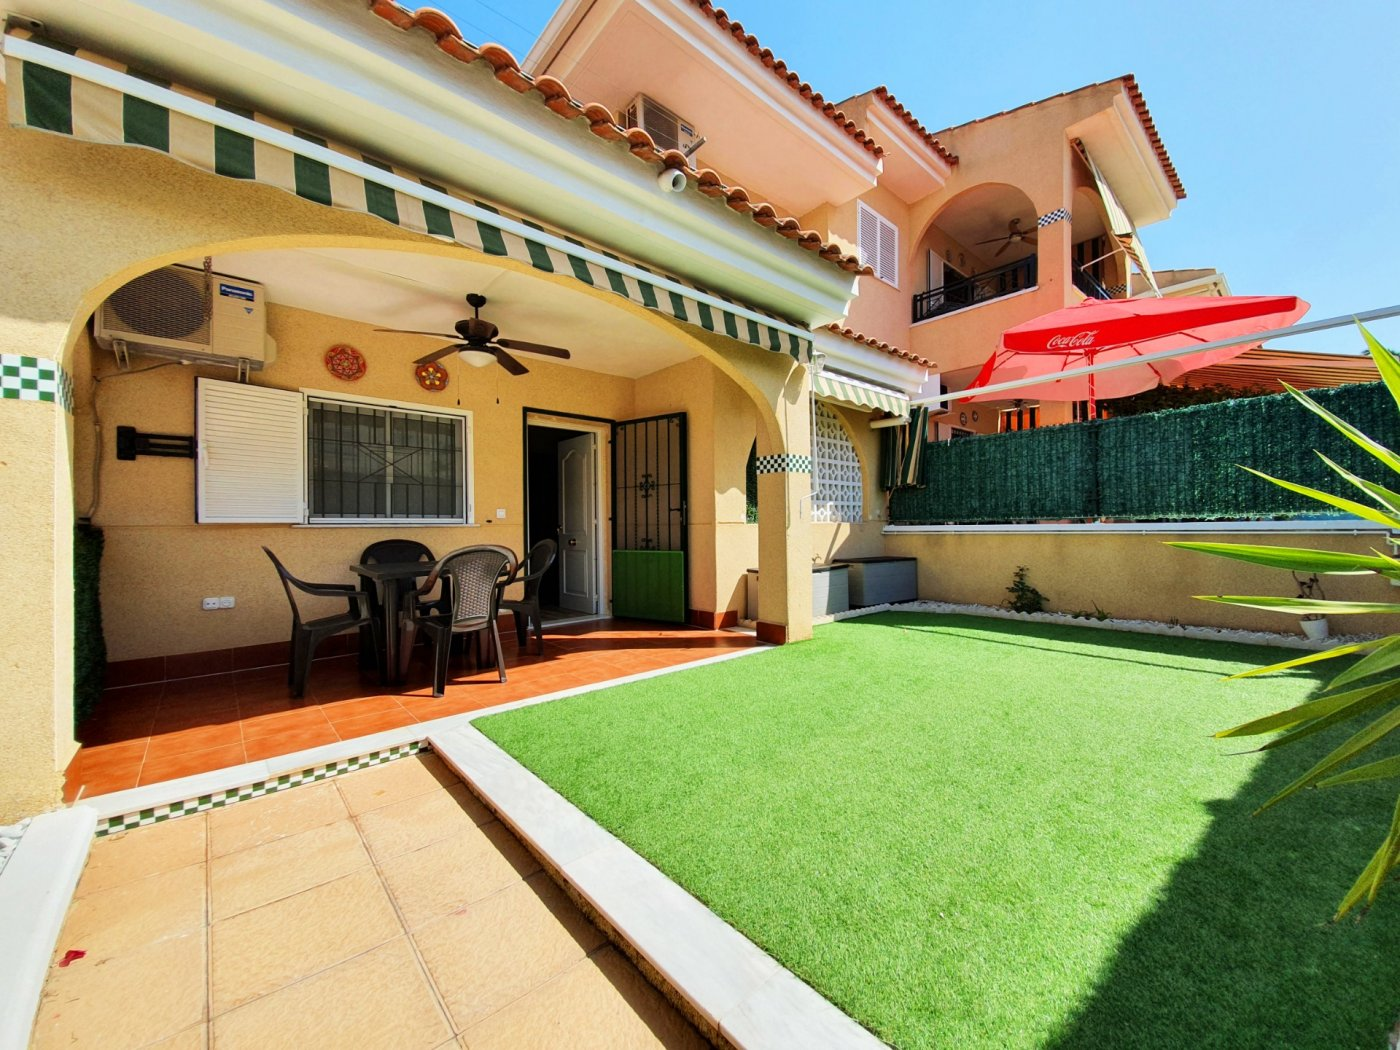 3 Bedrooms Corner House with Parking Space and Swimming Pool For Sale in Gran Alacant